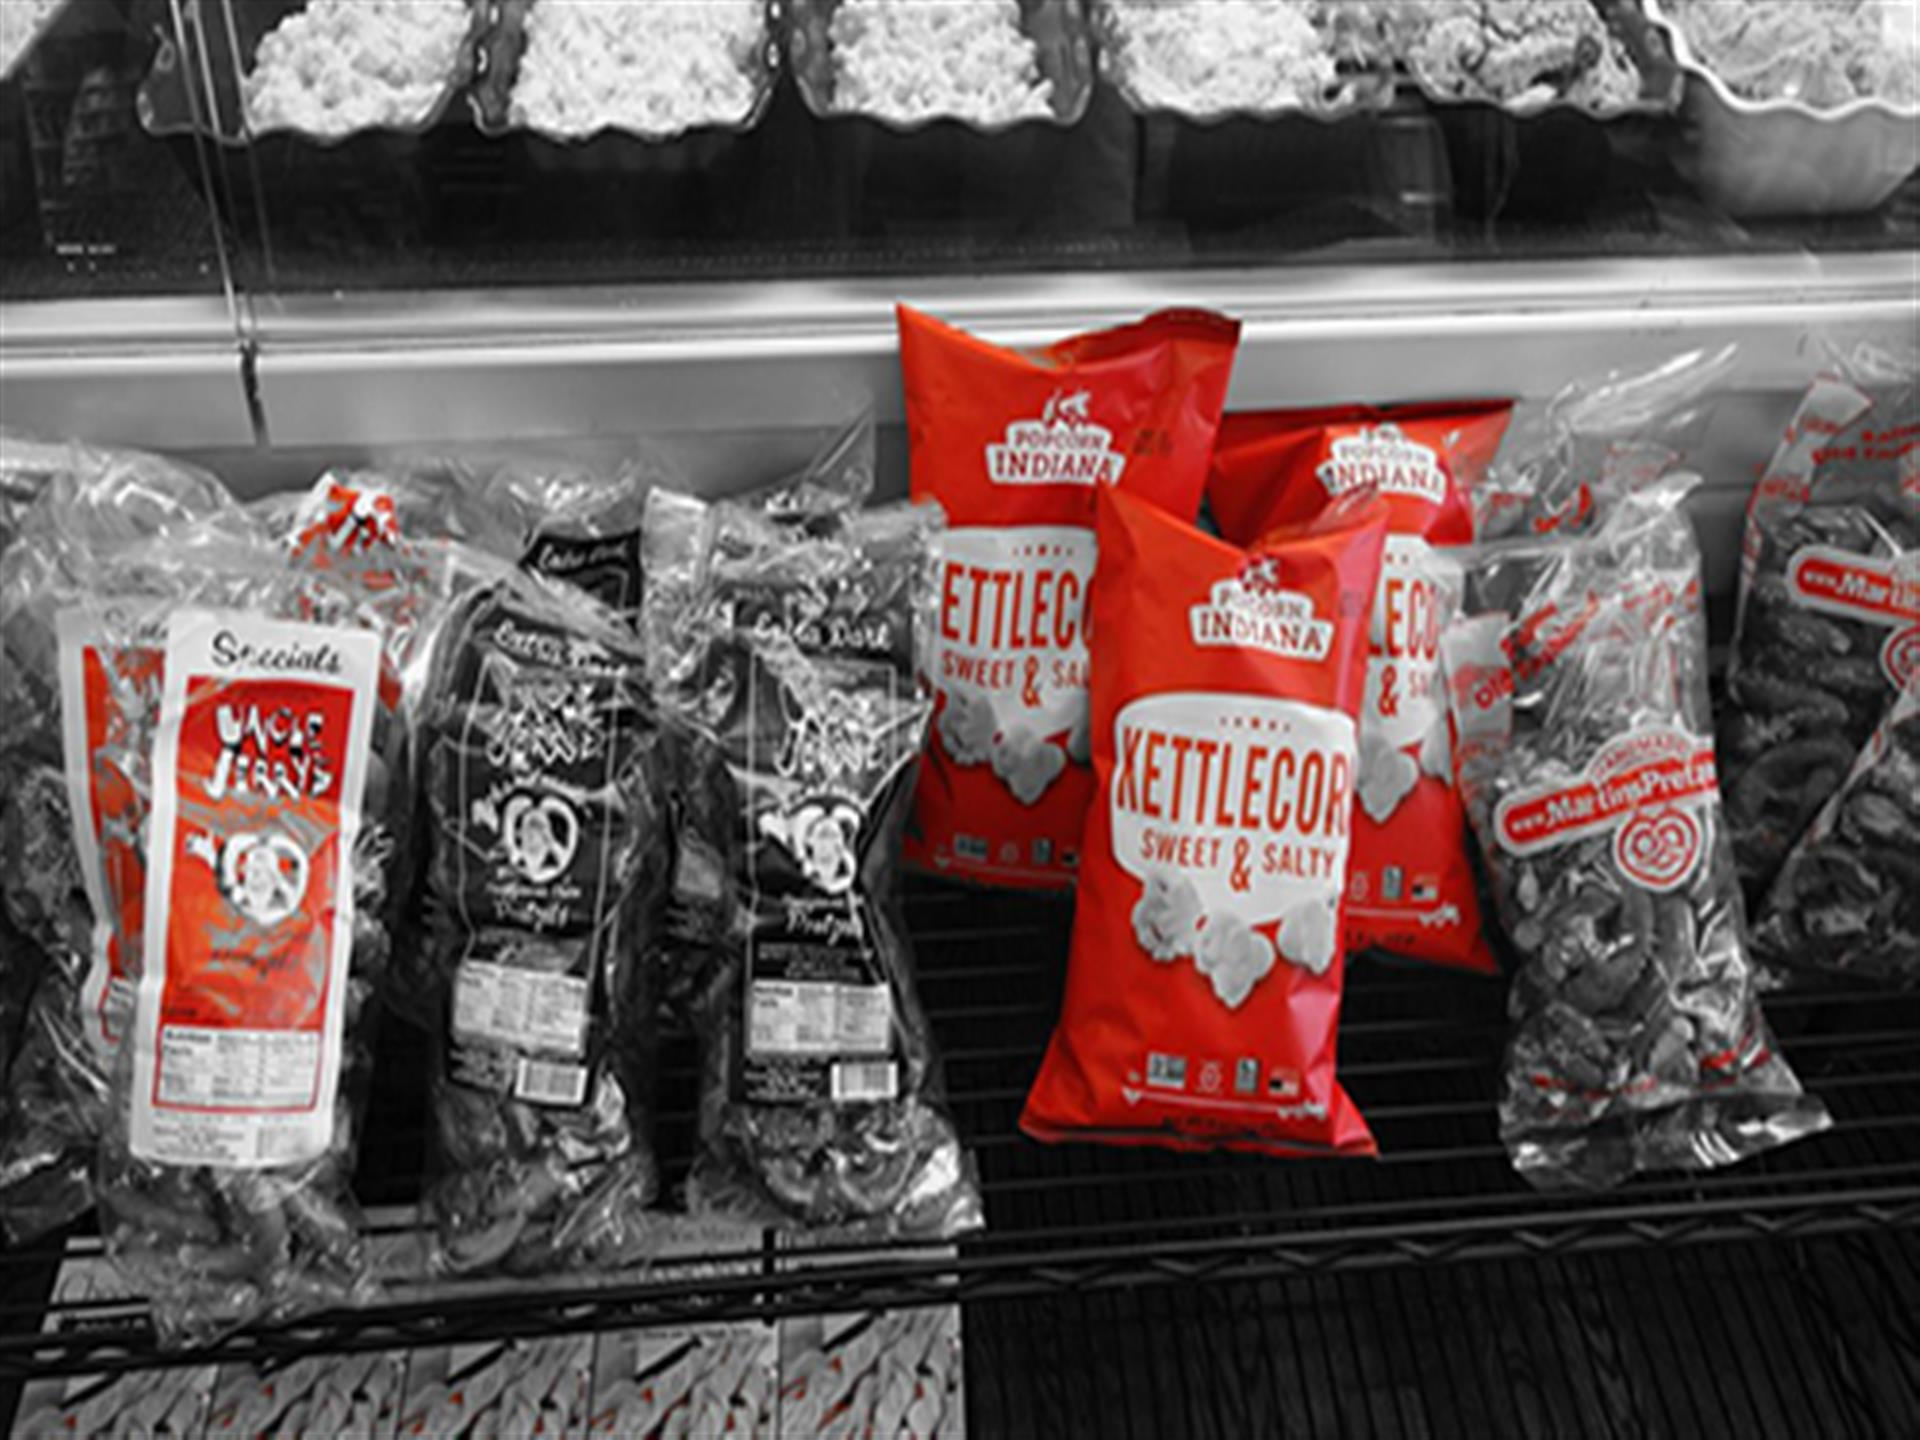 assortment of bags of chips